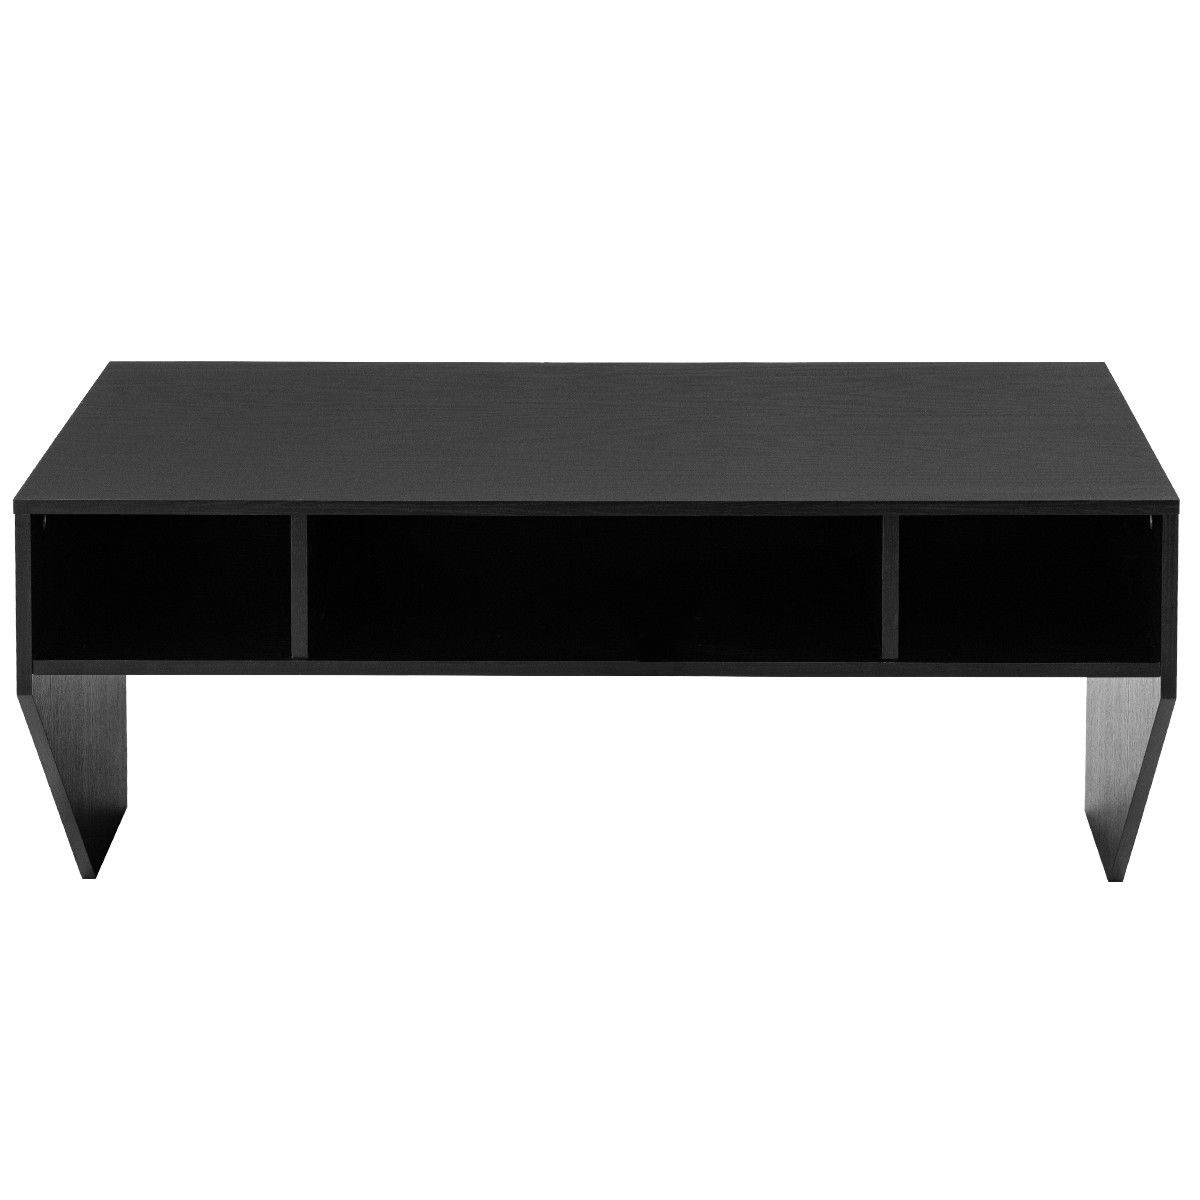 Shop Costway Wall Mounted Floating Computer Table Sturdy Desk Home Office  Furni Storag Shelf   Free Shipping Today   Overstock   19665905